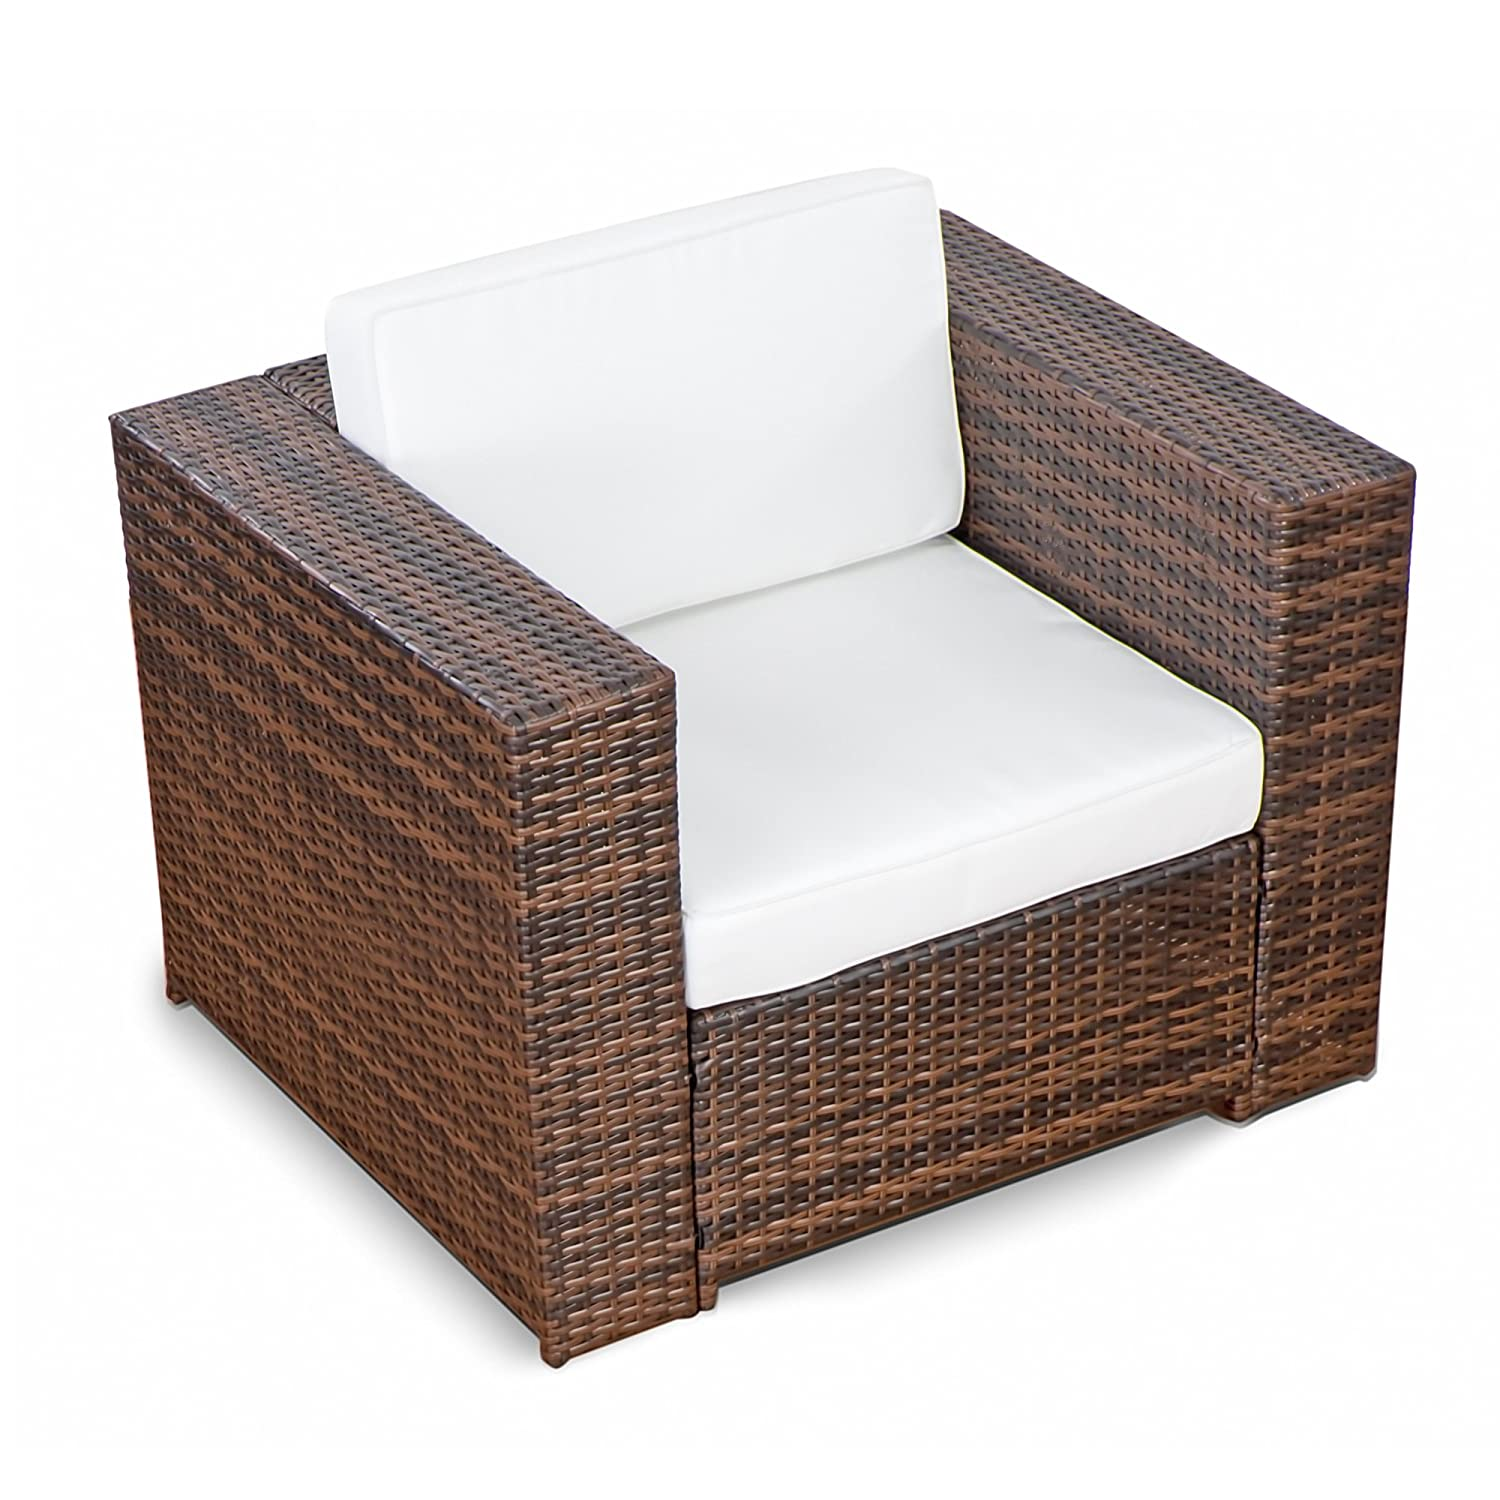 Lounge sessel terrasse  Amazon.de: XINRO (1er) Premium Lounge Sessel - Lounge Sofa ...